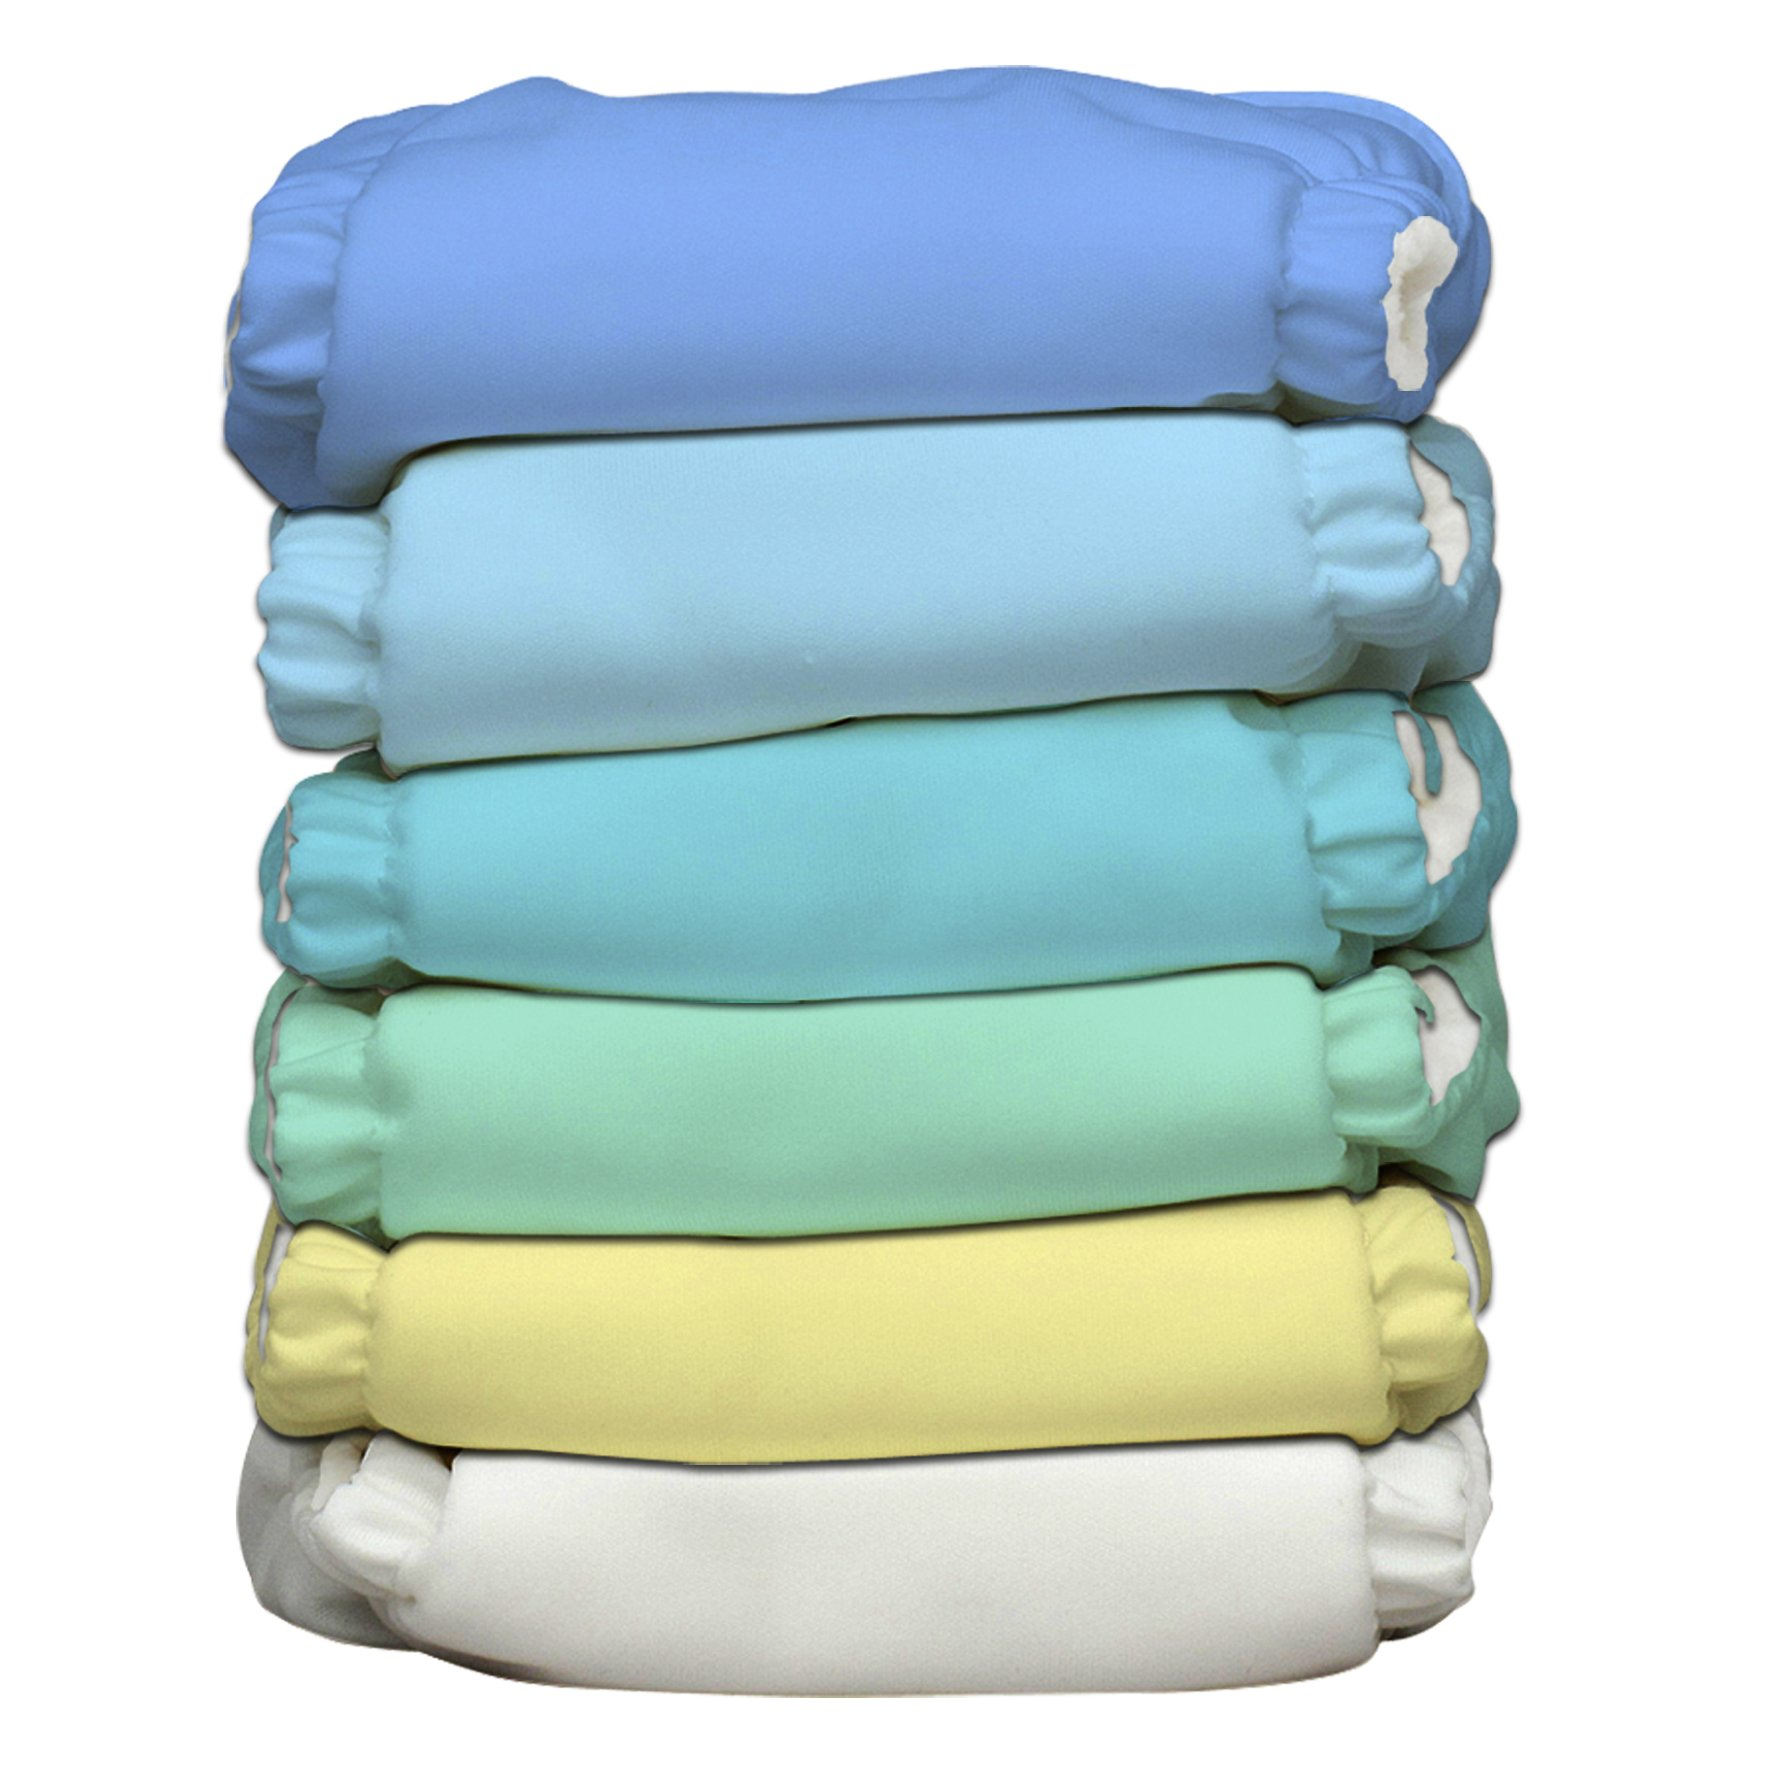 Charlie Banana 2-in-1 6-Piece Reusable Diapers, Unisex Pastel